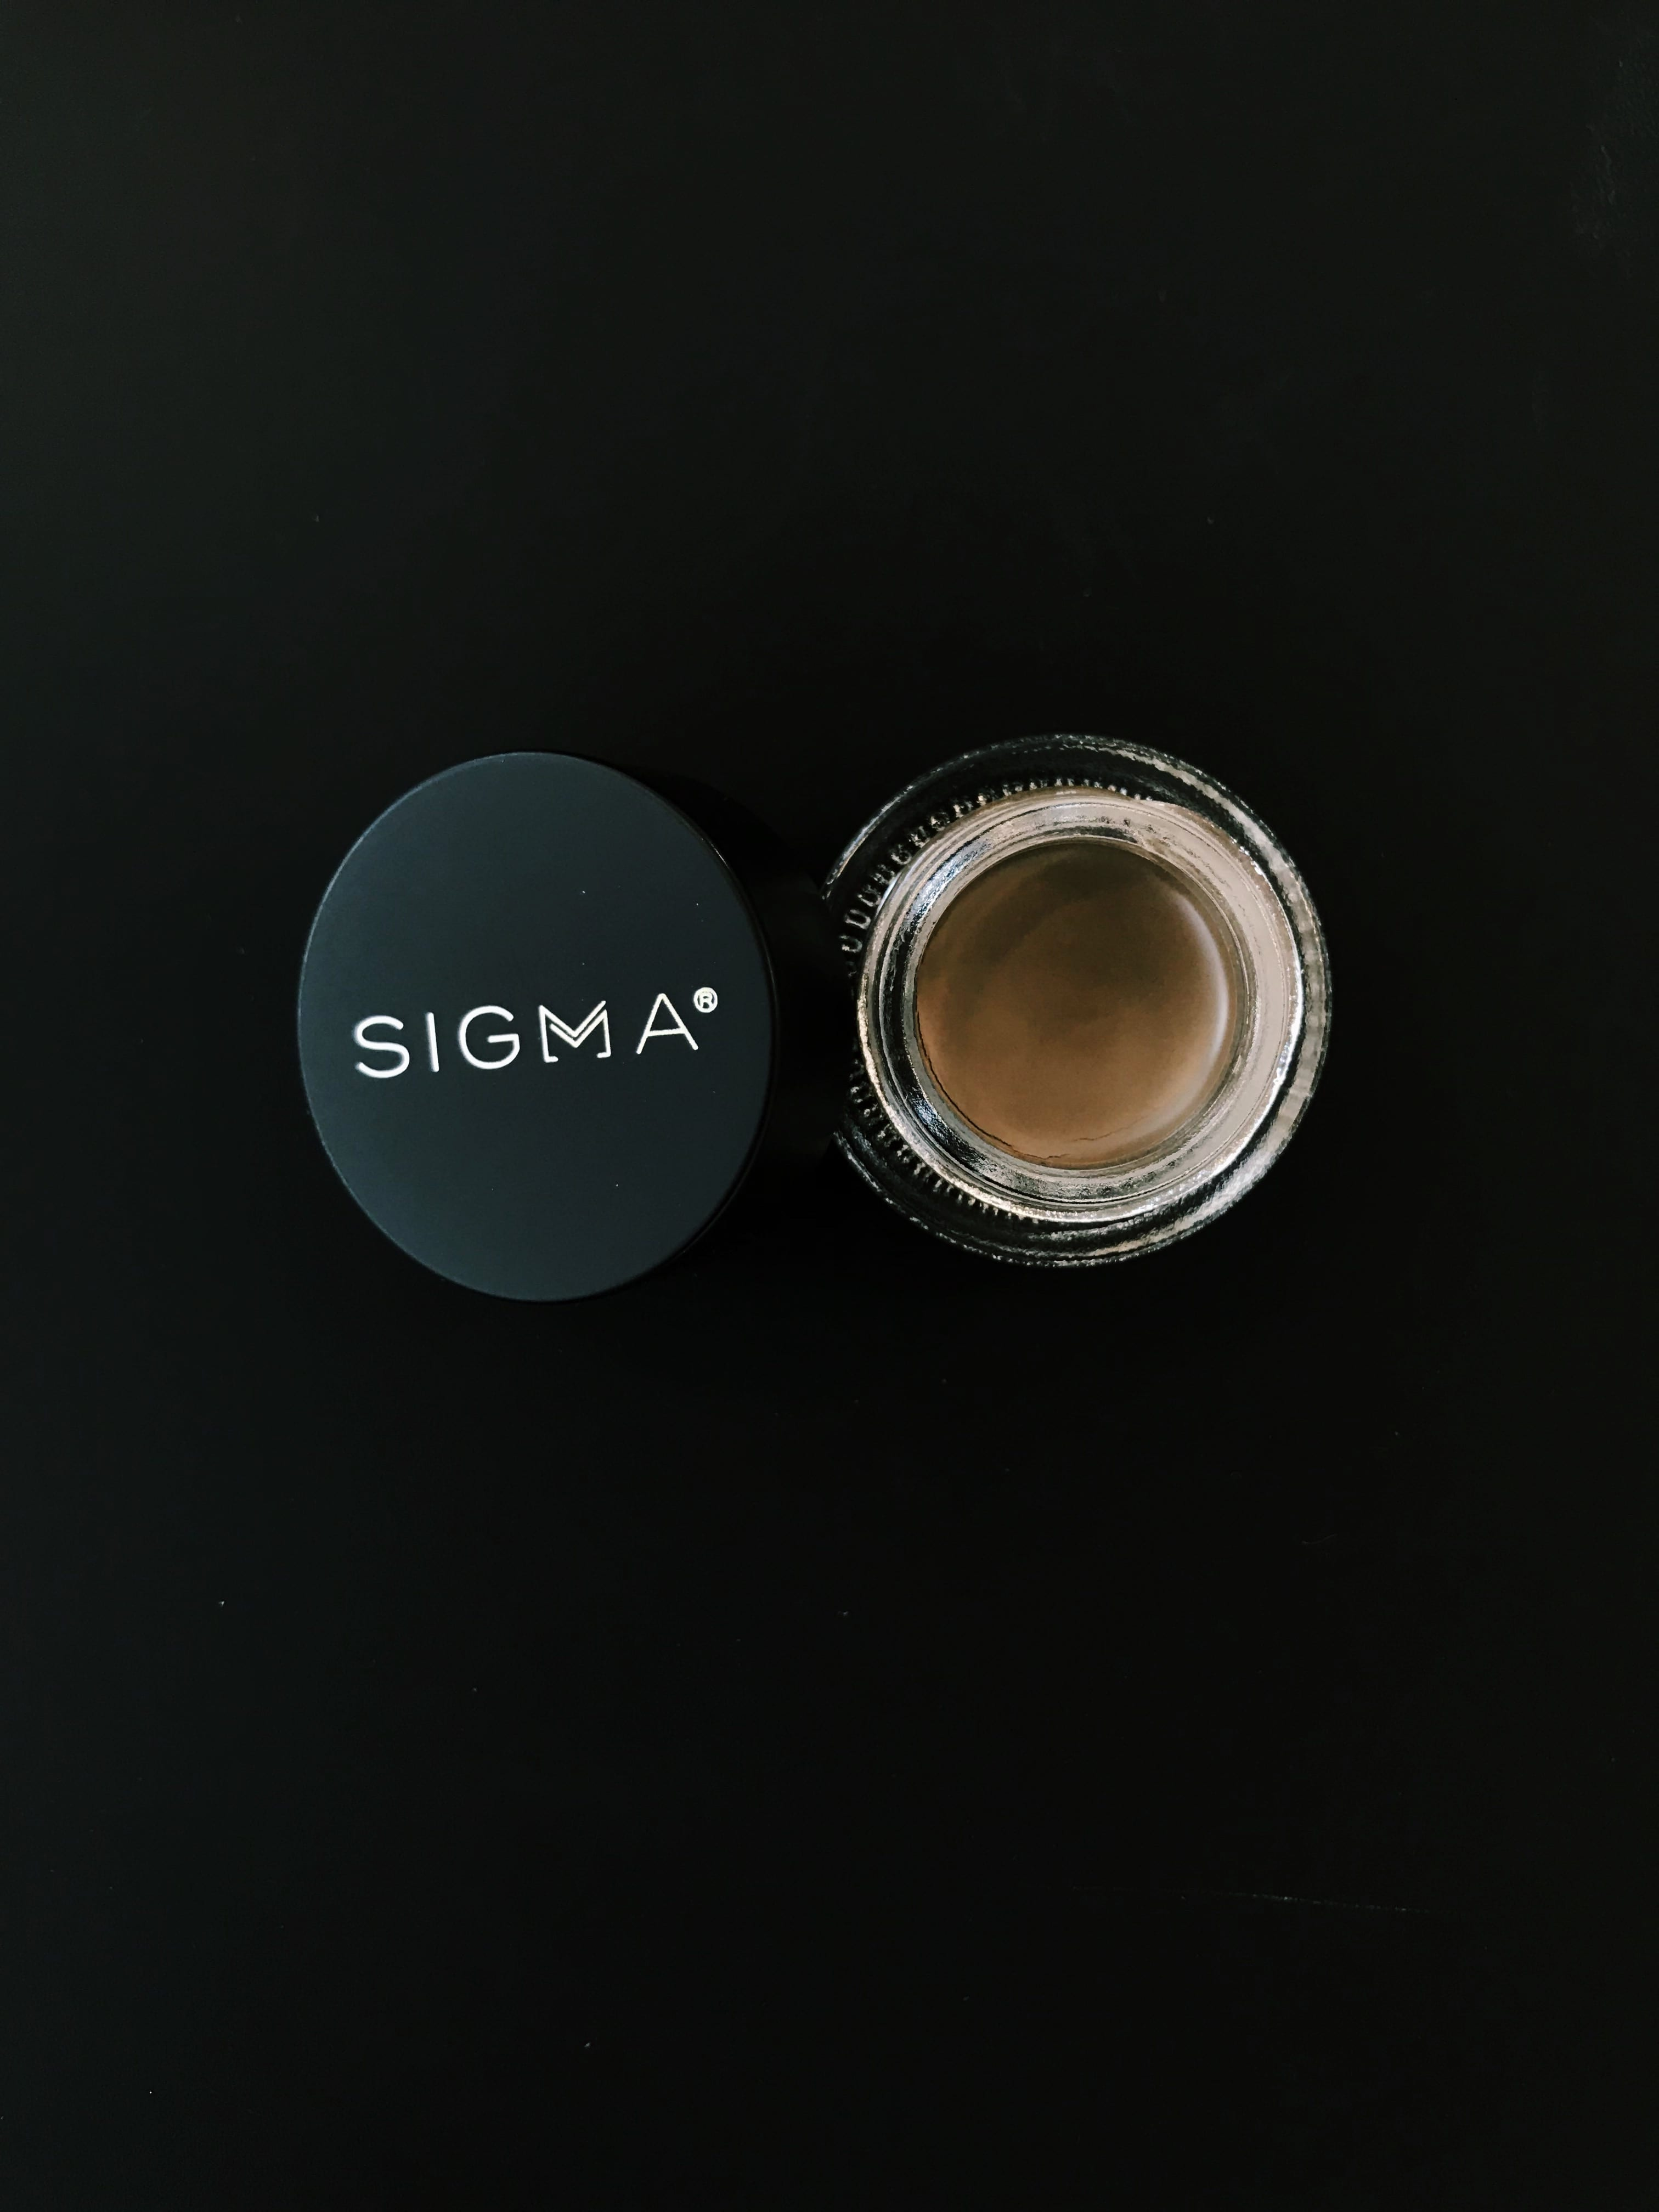 Sigma Brow Pomade Review | HQhair Blog